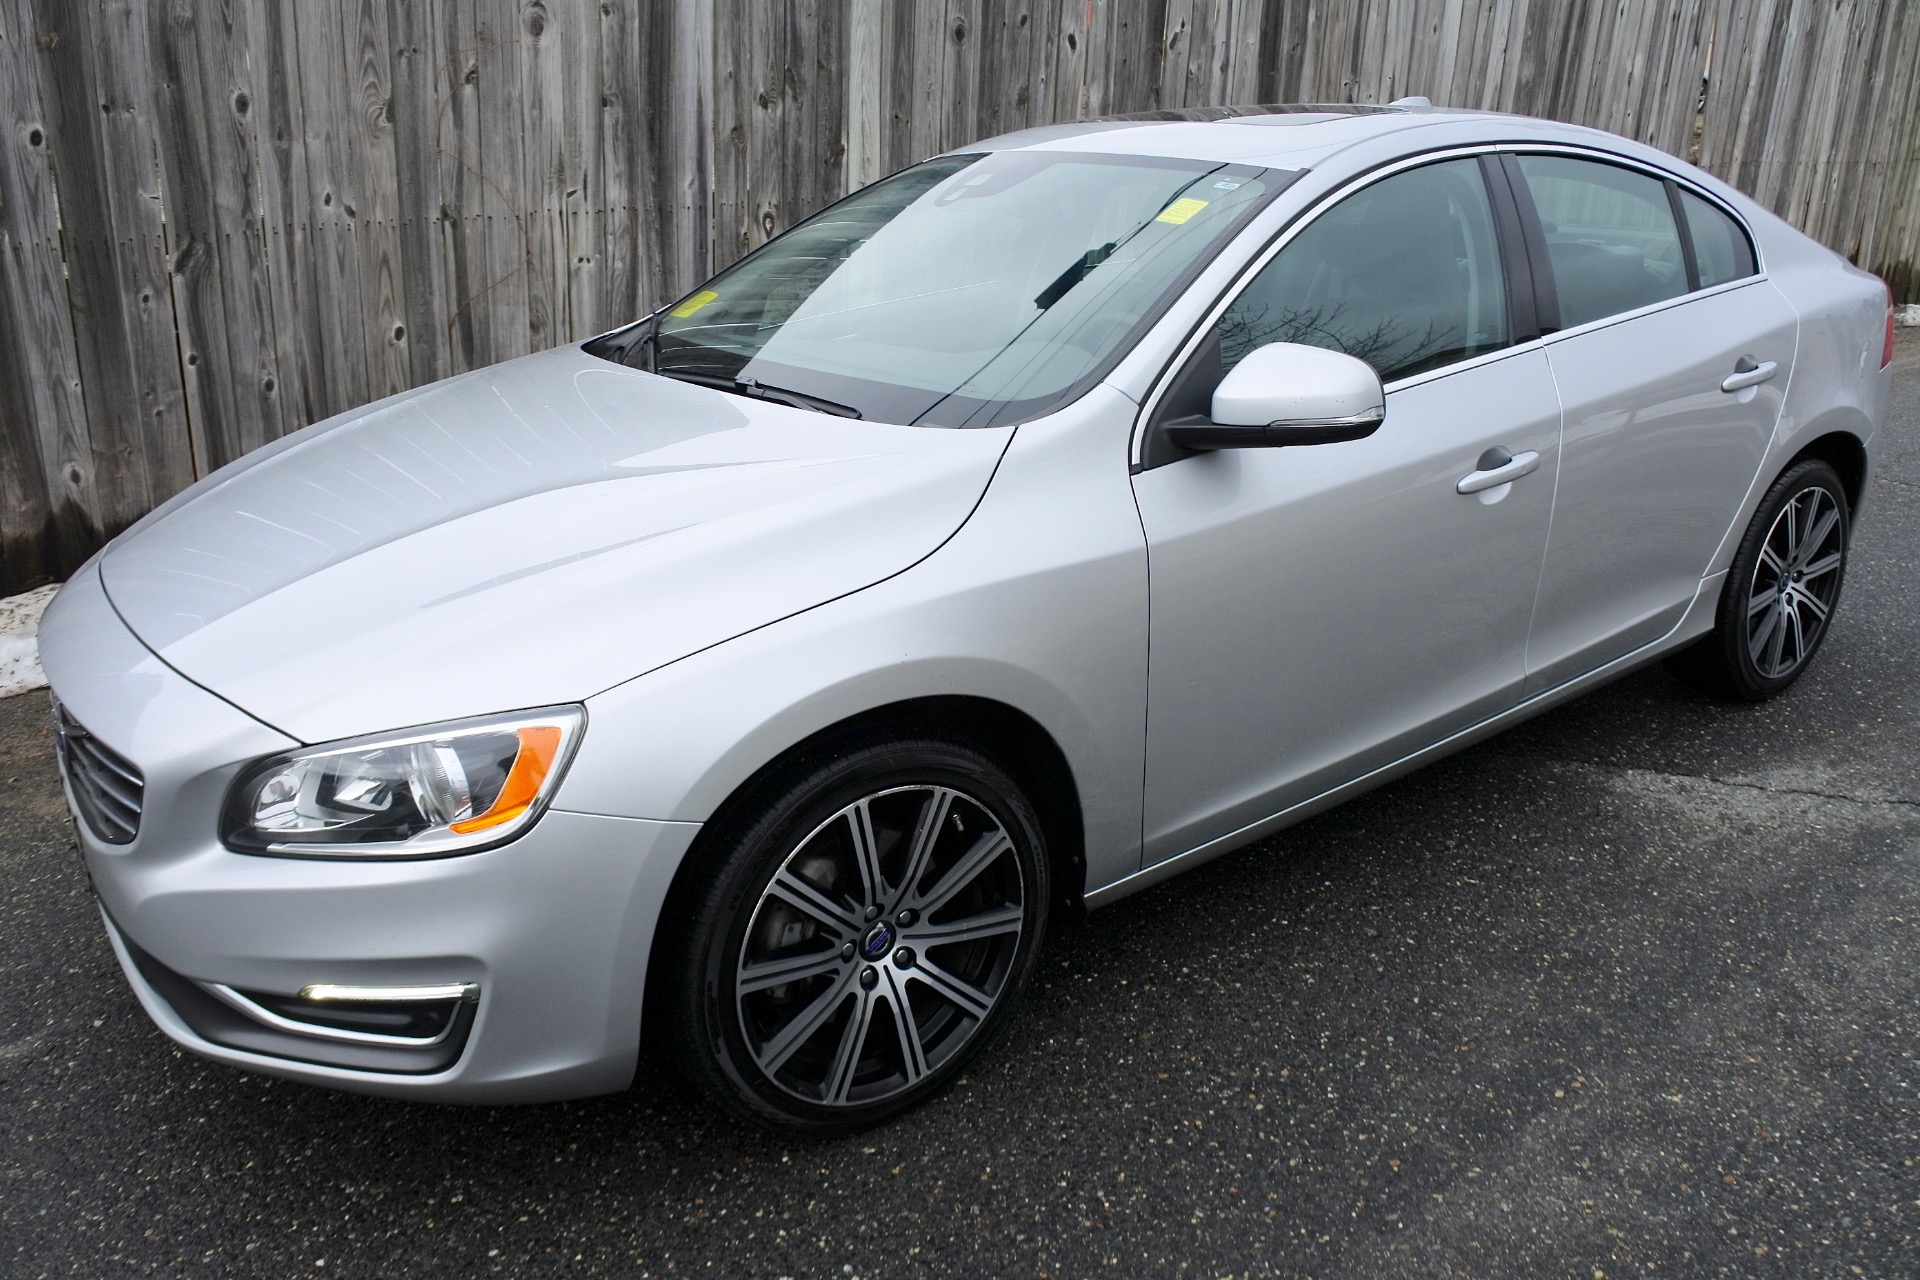 Used 2014 Volvo S60 4dr Sdn T5 Premier AWD Used 2014 Volvo S60 4dr Sdn T5 Premier AWD for sale  at Metro West Motorcars LLC in Shrewsbury MA 1